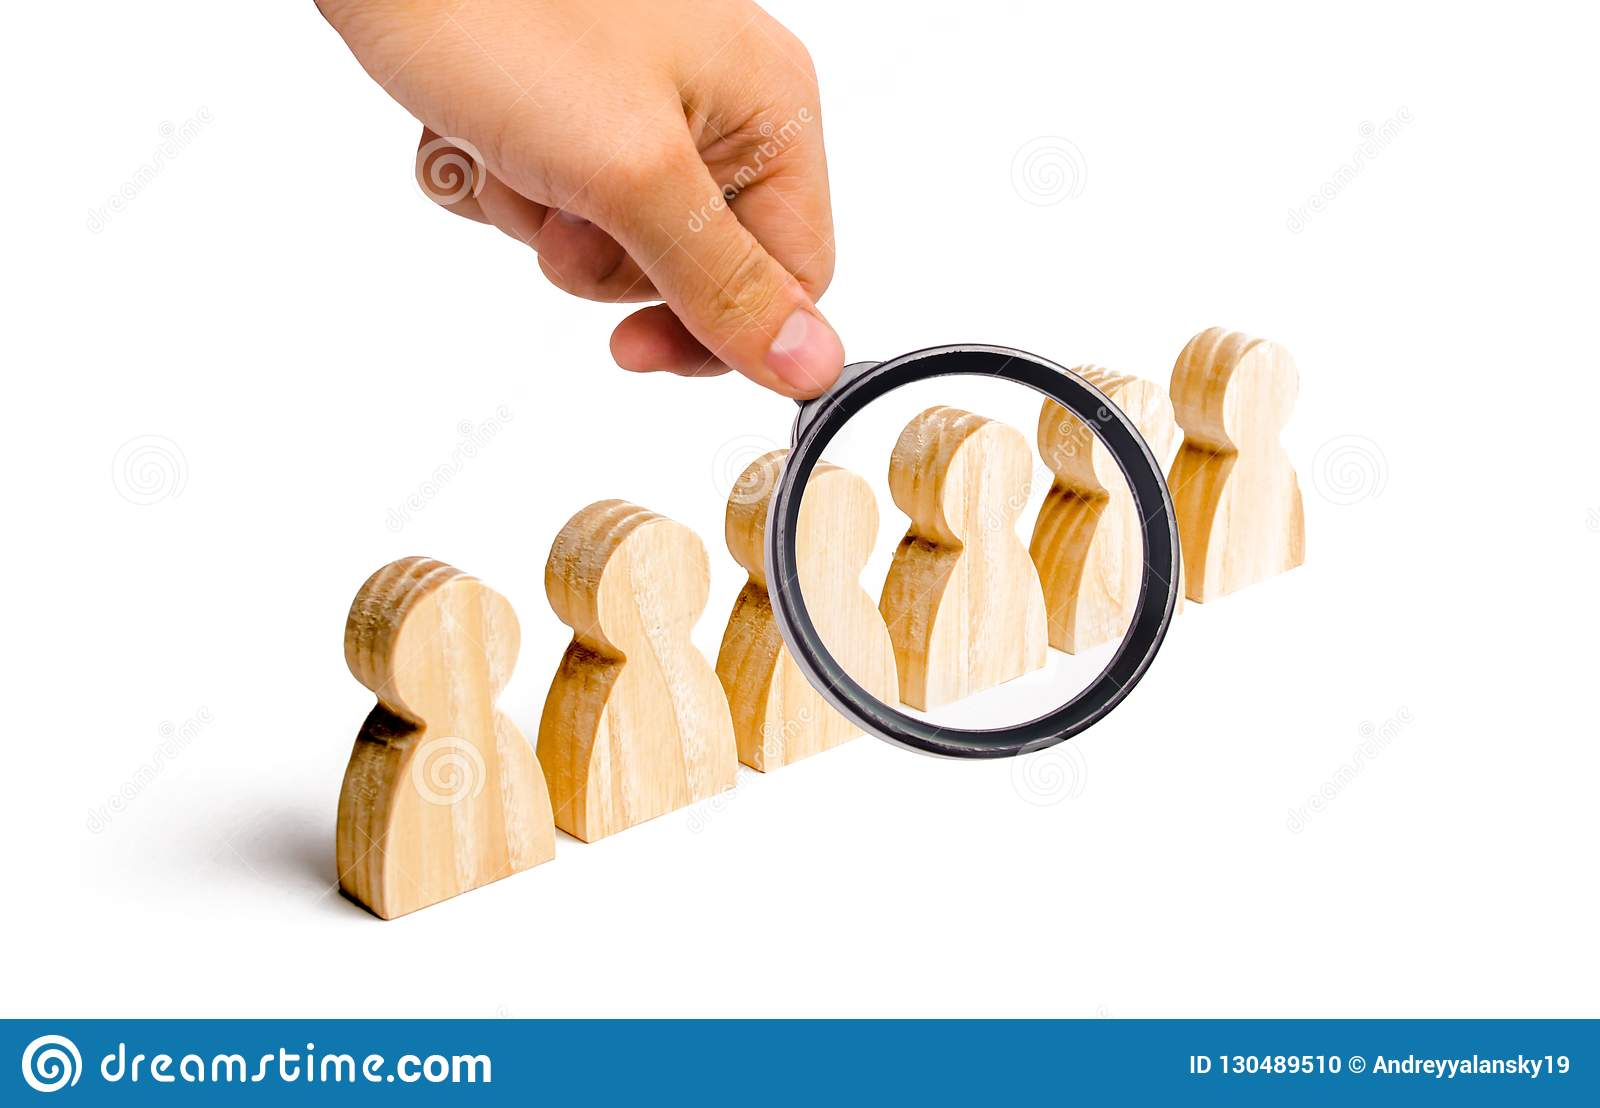 Magnifying glass is looking at the People stand in a formation on a white background. Discipline and order, submission.